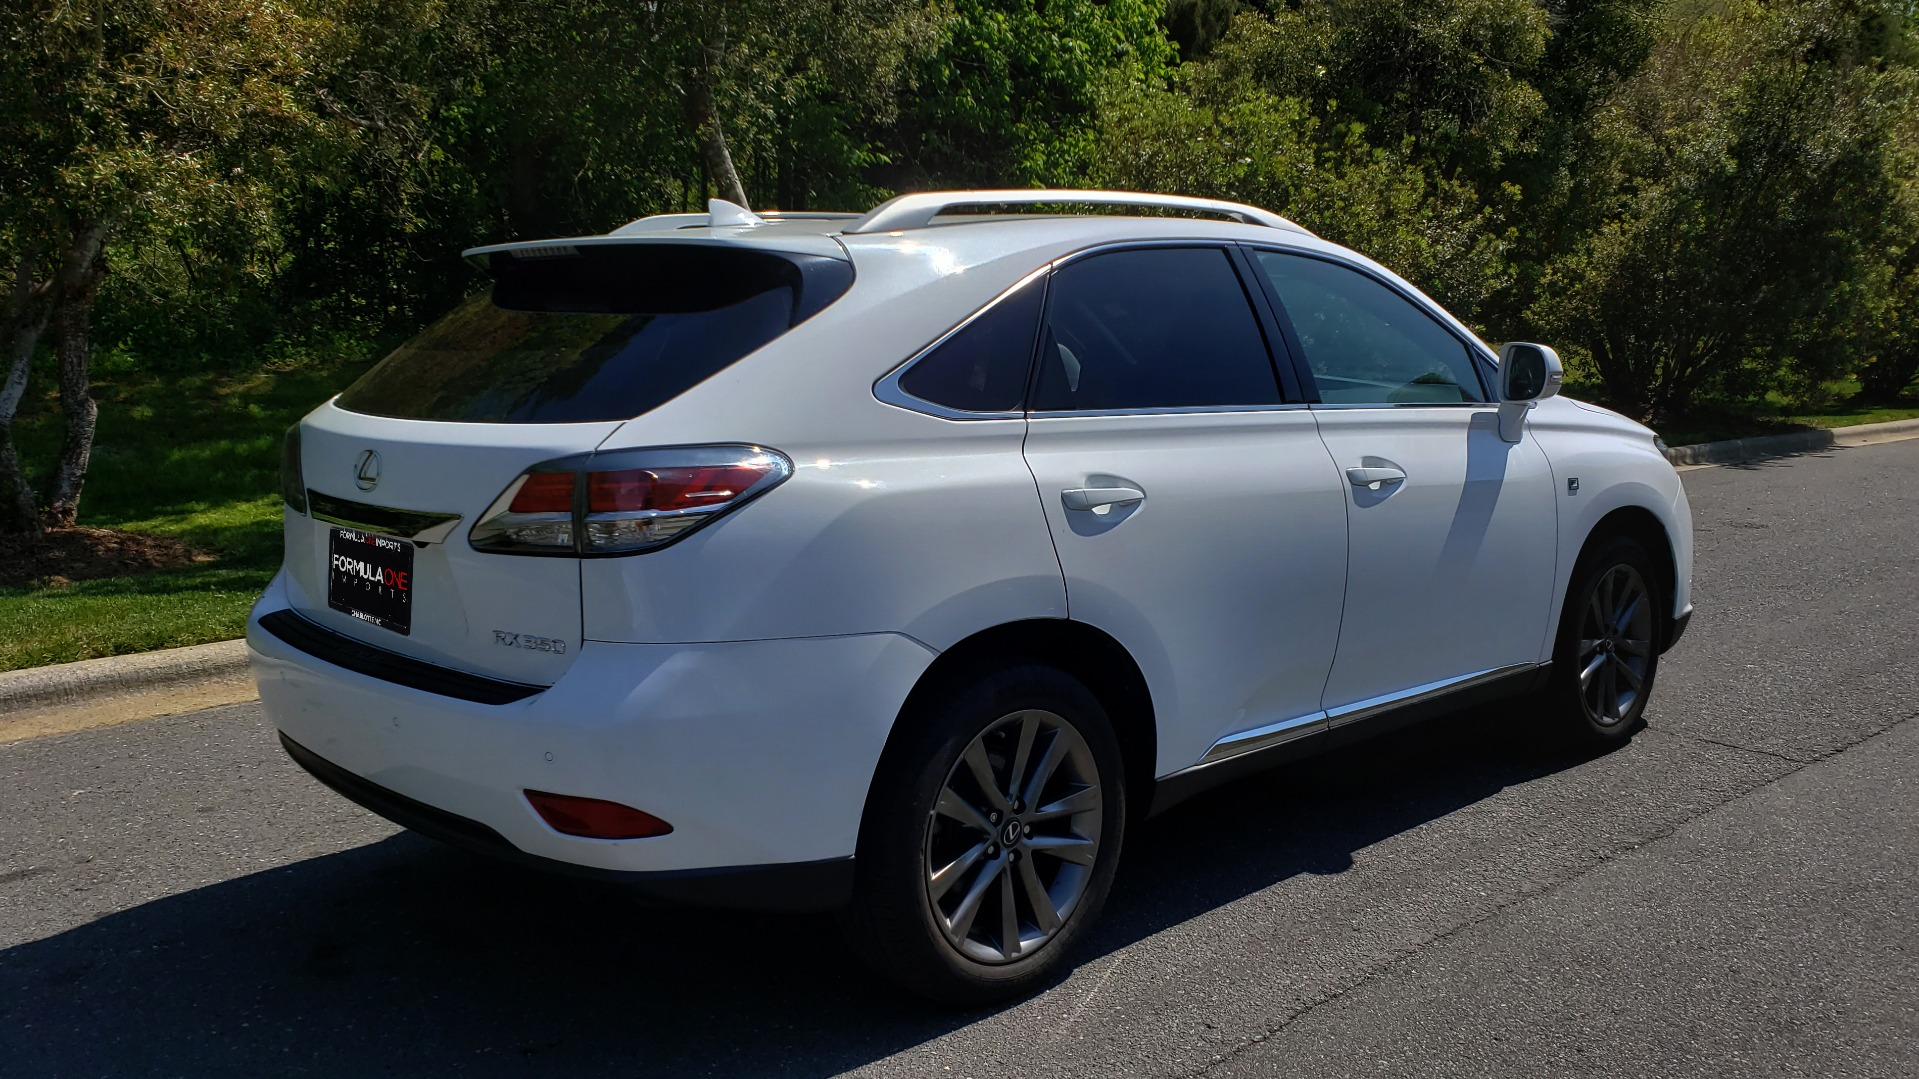 Used 2015 Lexus RX 350 AWD F-SPORT / NAV / SUNBROOF / REARVIEW / BSM / PARK ASST for sale Sold at Formula Imports in Charlotte NC 28227 6